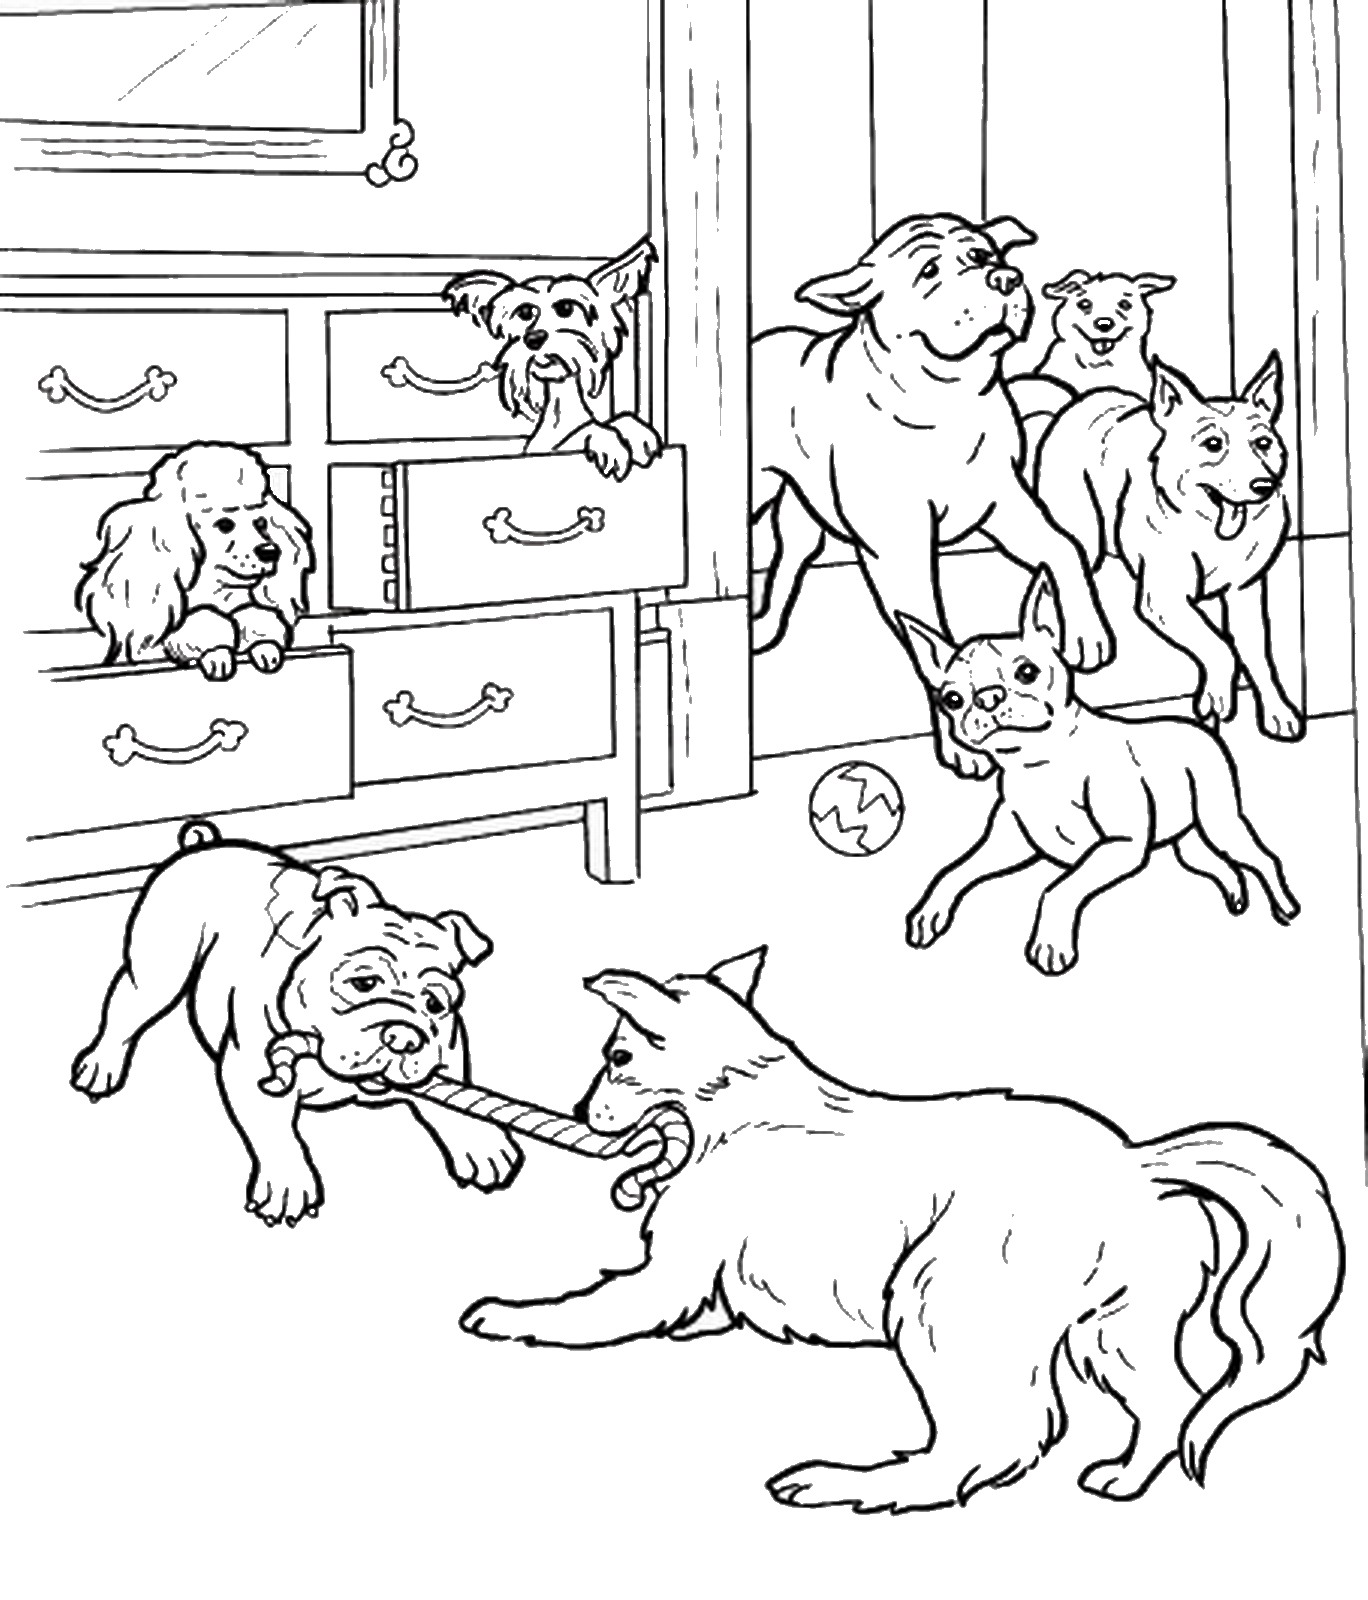 dog grooming coloring pages 32 weiner dog coloring page in 2020 dog coloring page grooming dog pages coloring